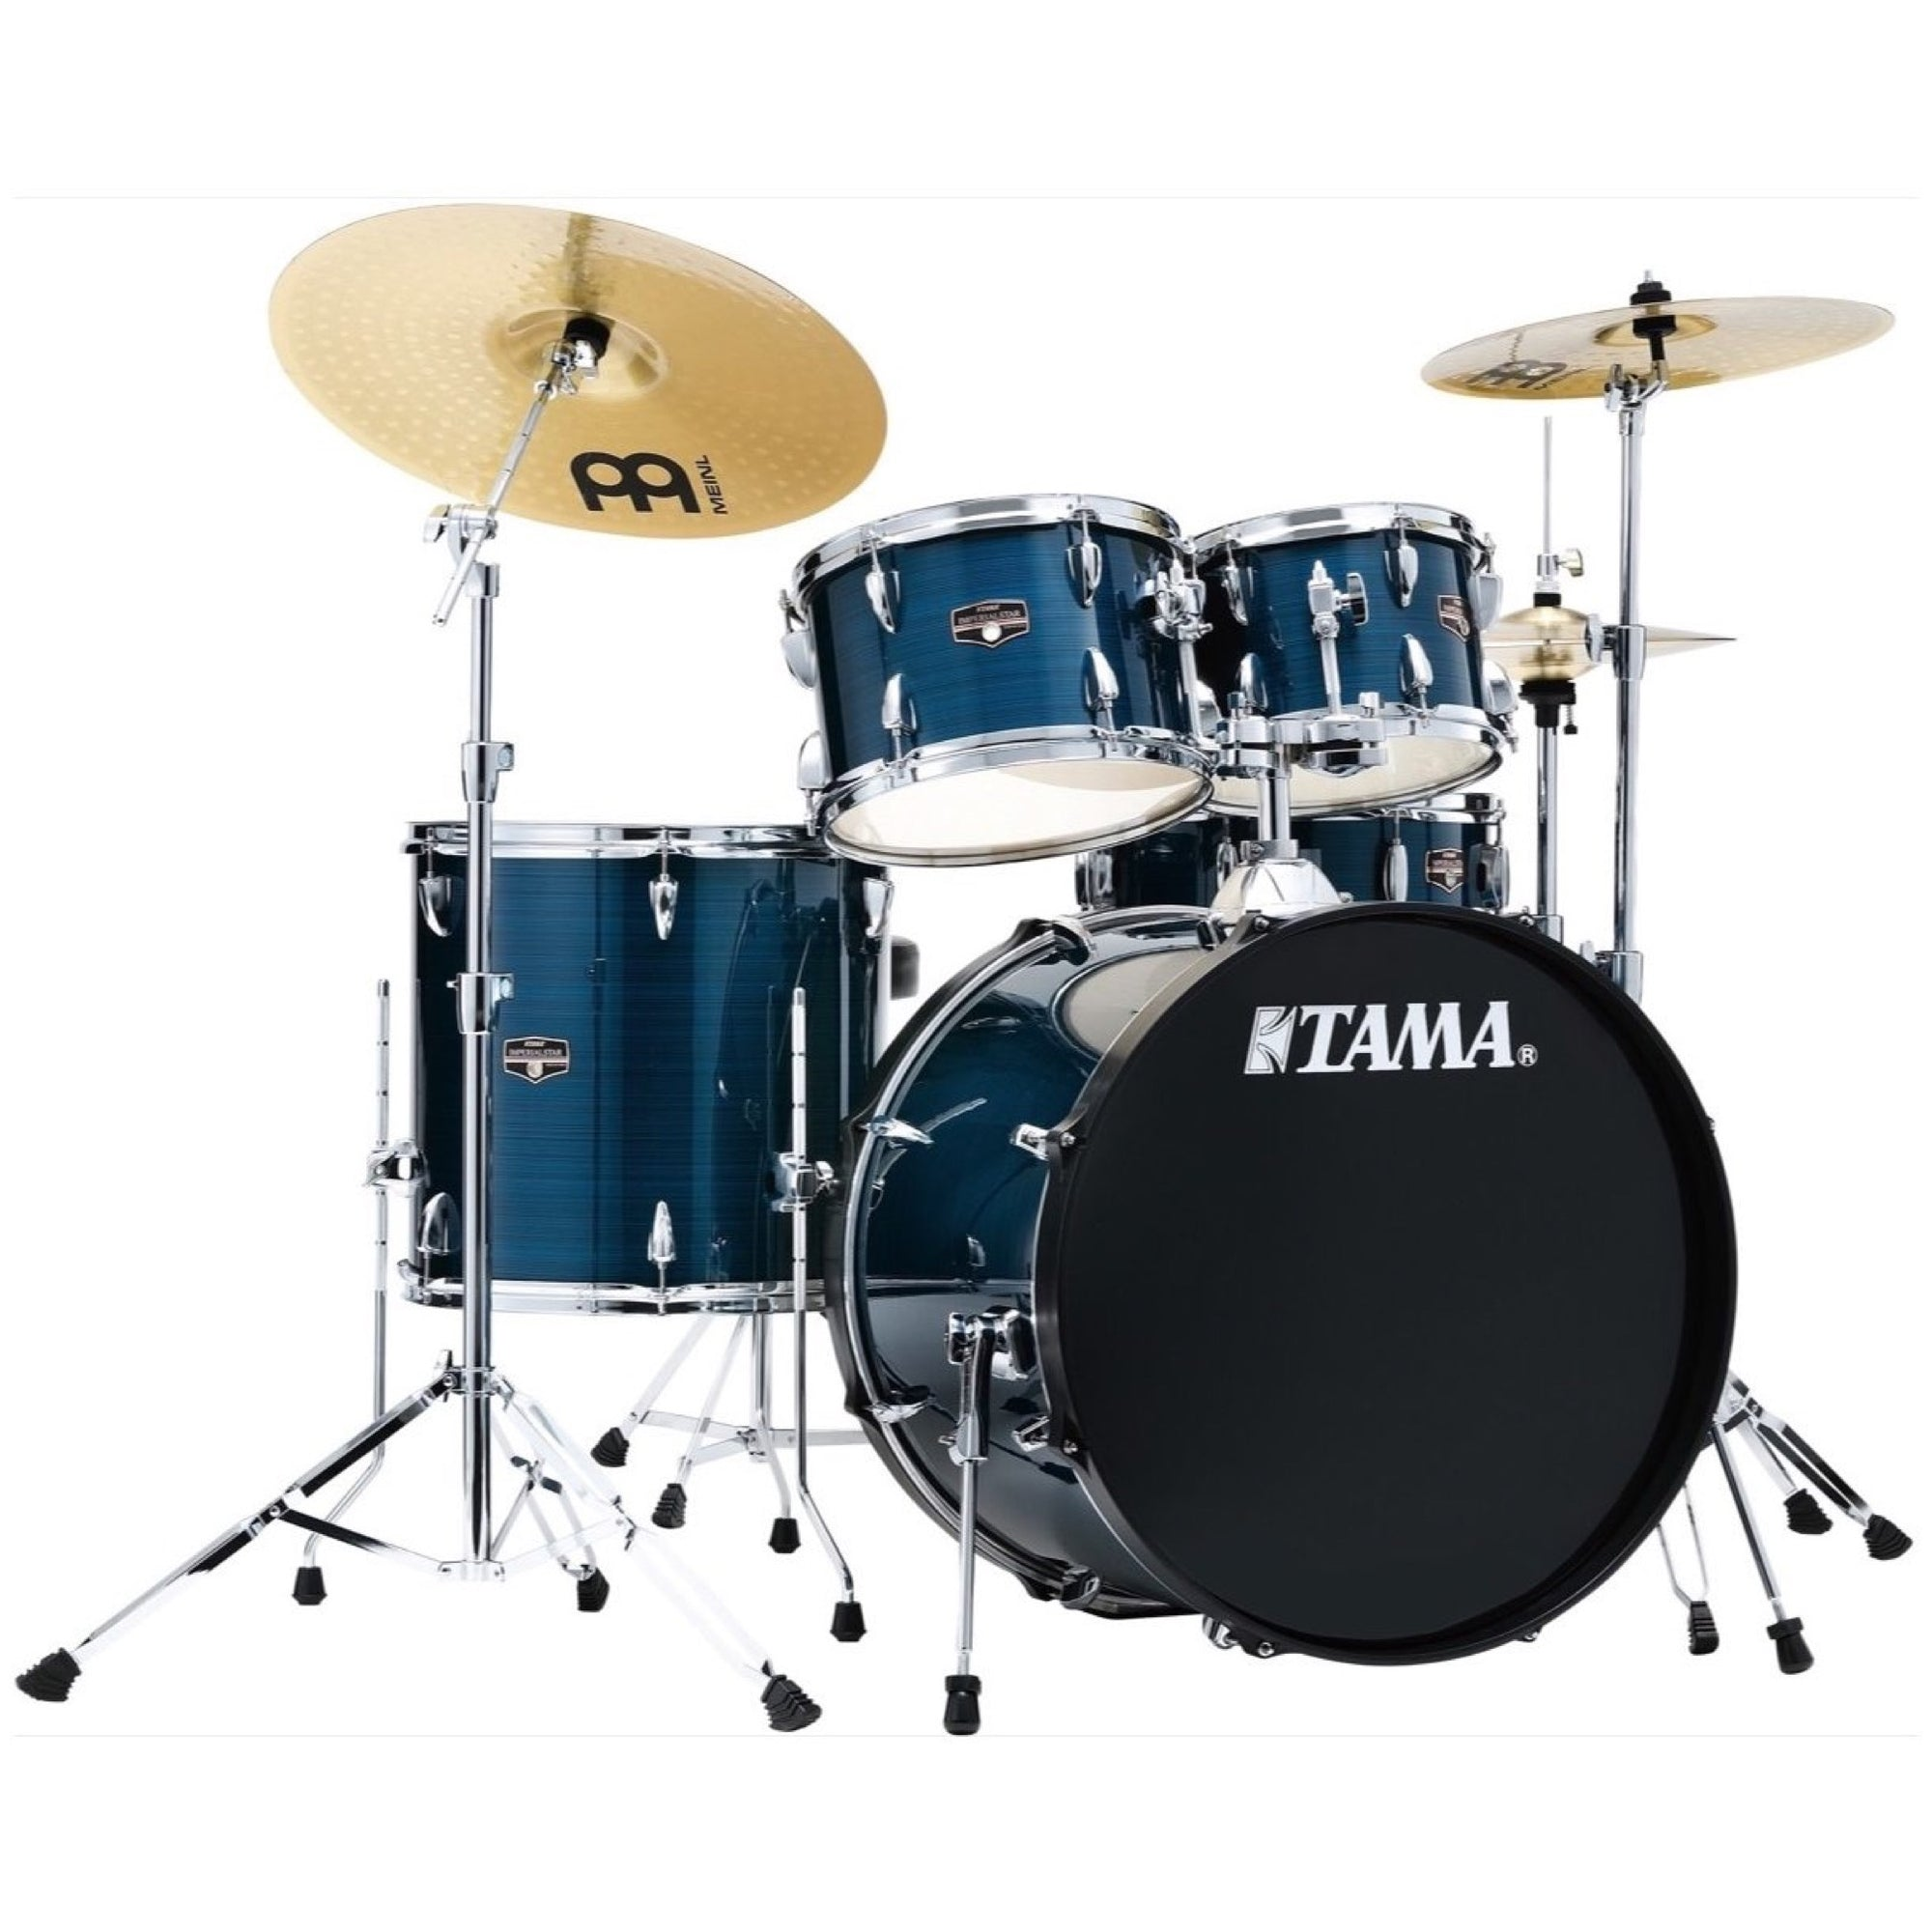 Tama IE52C Imperialstar Drum Kit, 5-Piece (with Meinl Cymbals), Hairline Blue